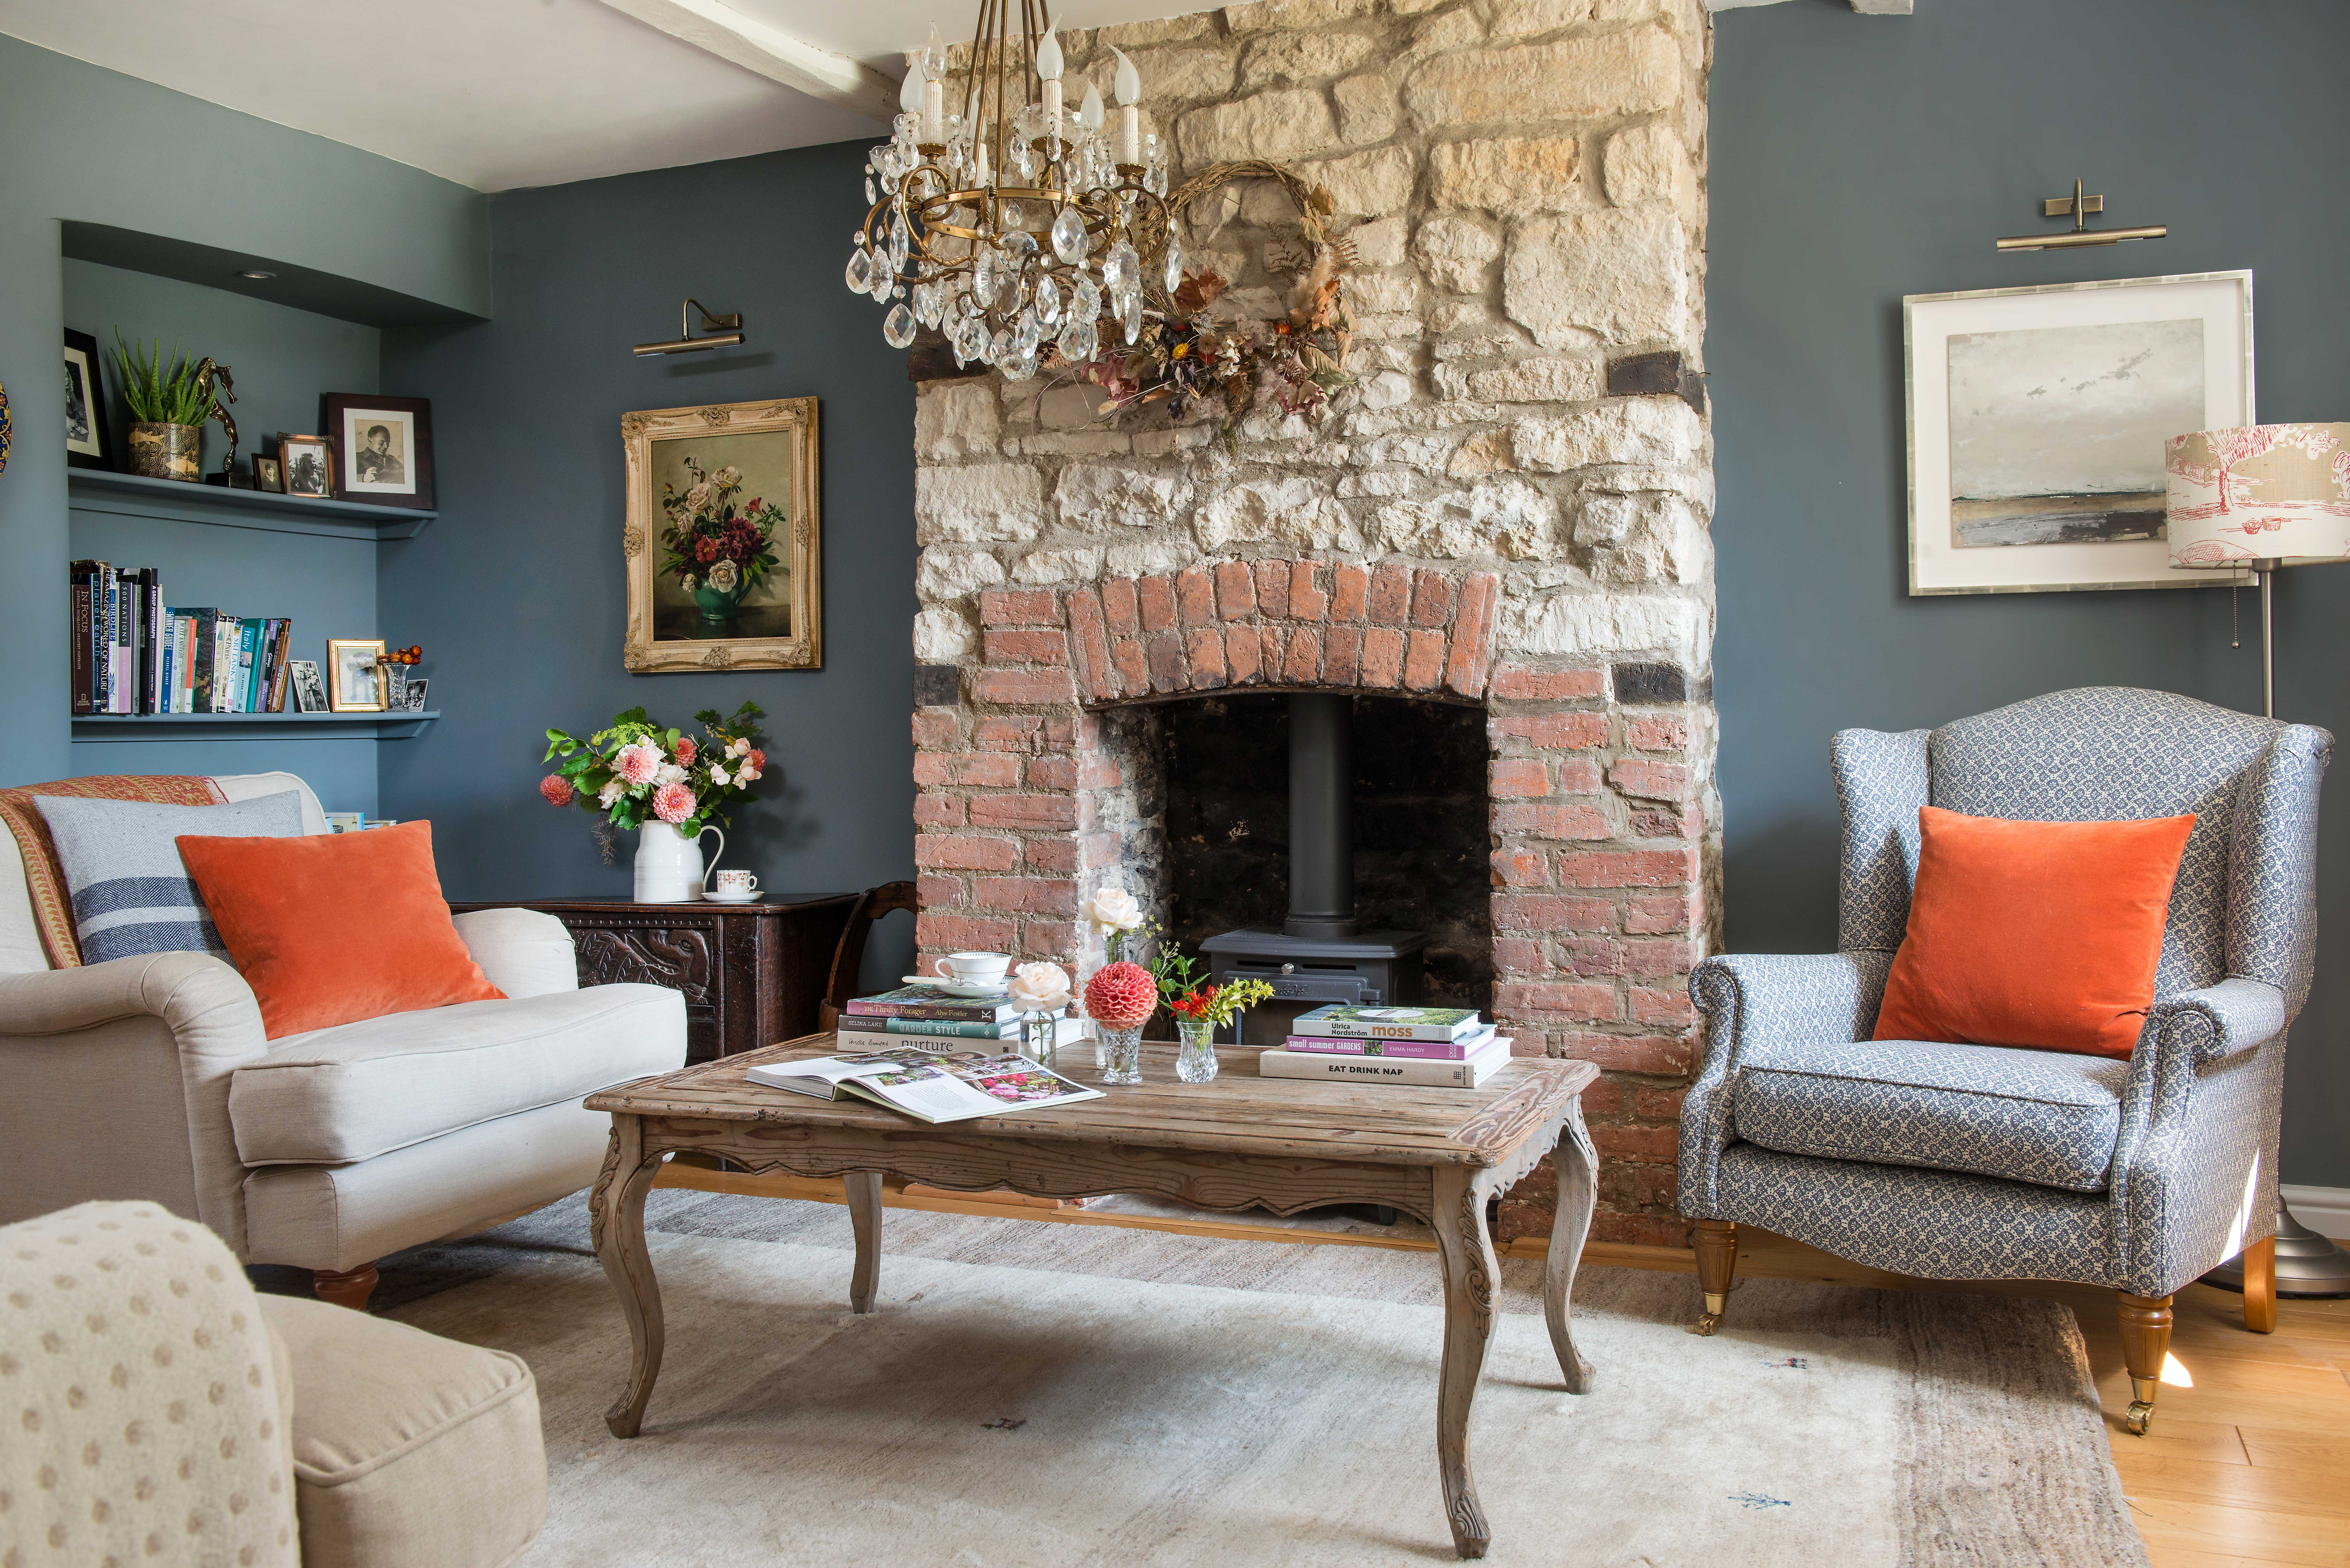 15 Traditional Fireplaces Design Ideas To Inspire Your Renovation Real Homes